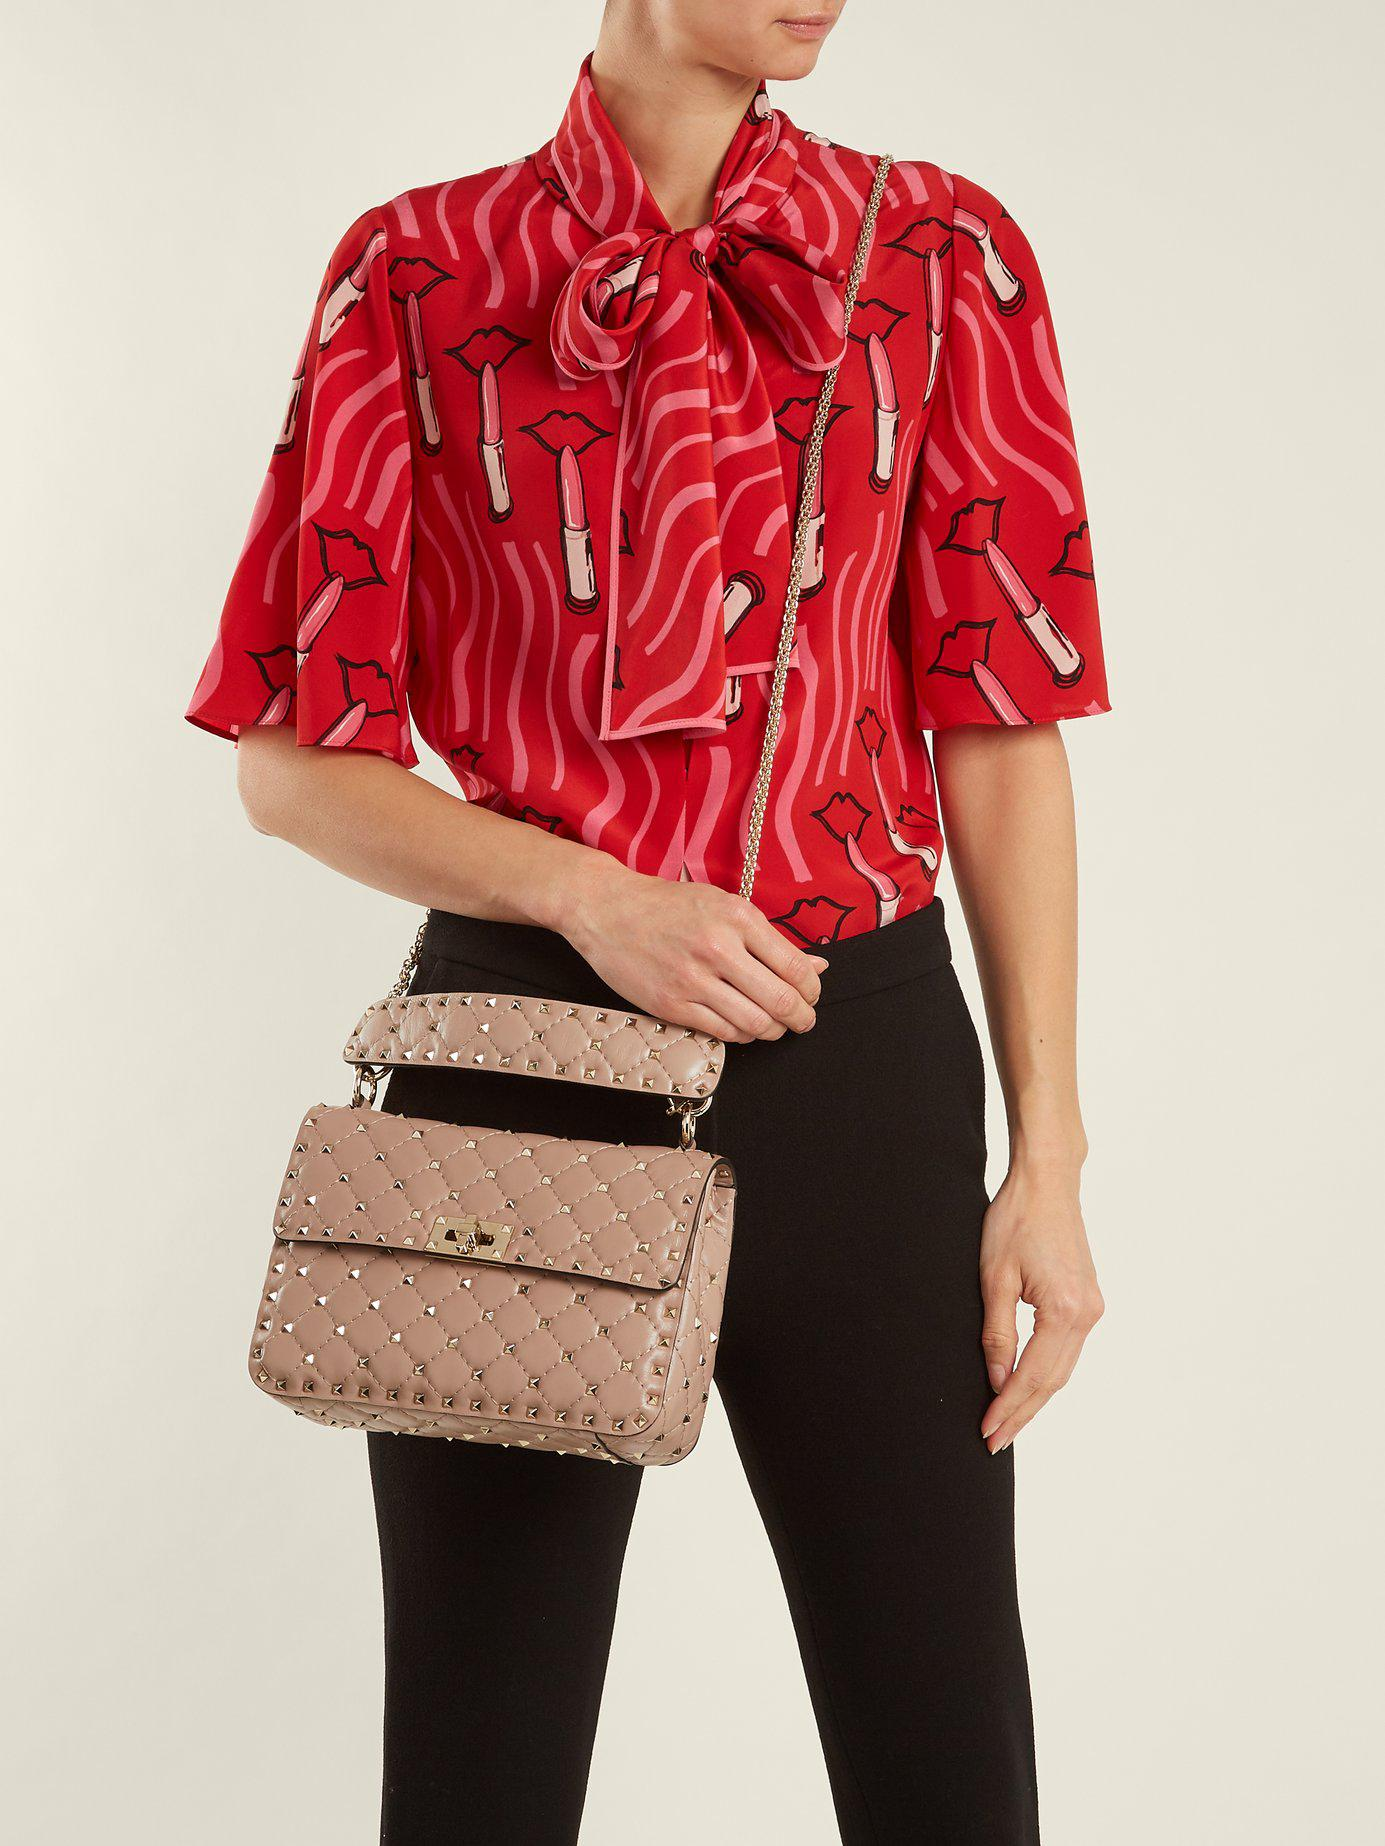 d1ce7111b389 Valentino - Multicolor Rockstud Spike Medium Quilted Leather Shoulder Bag -  Lyst. View fullscreen